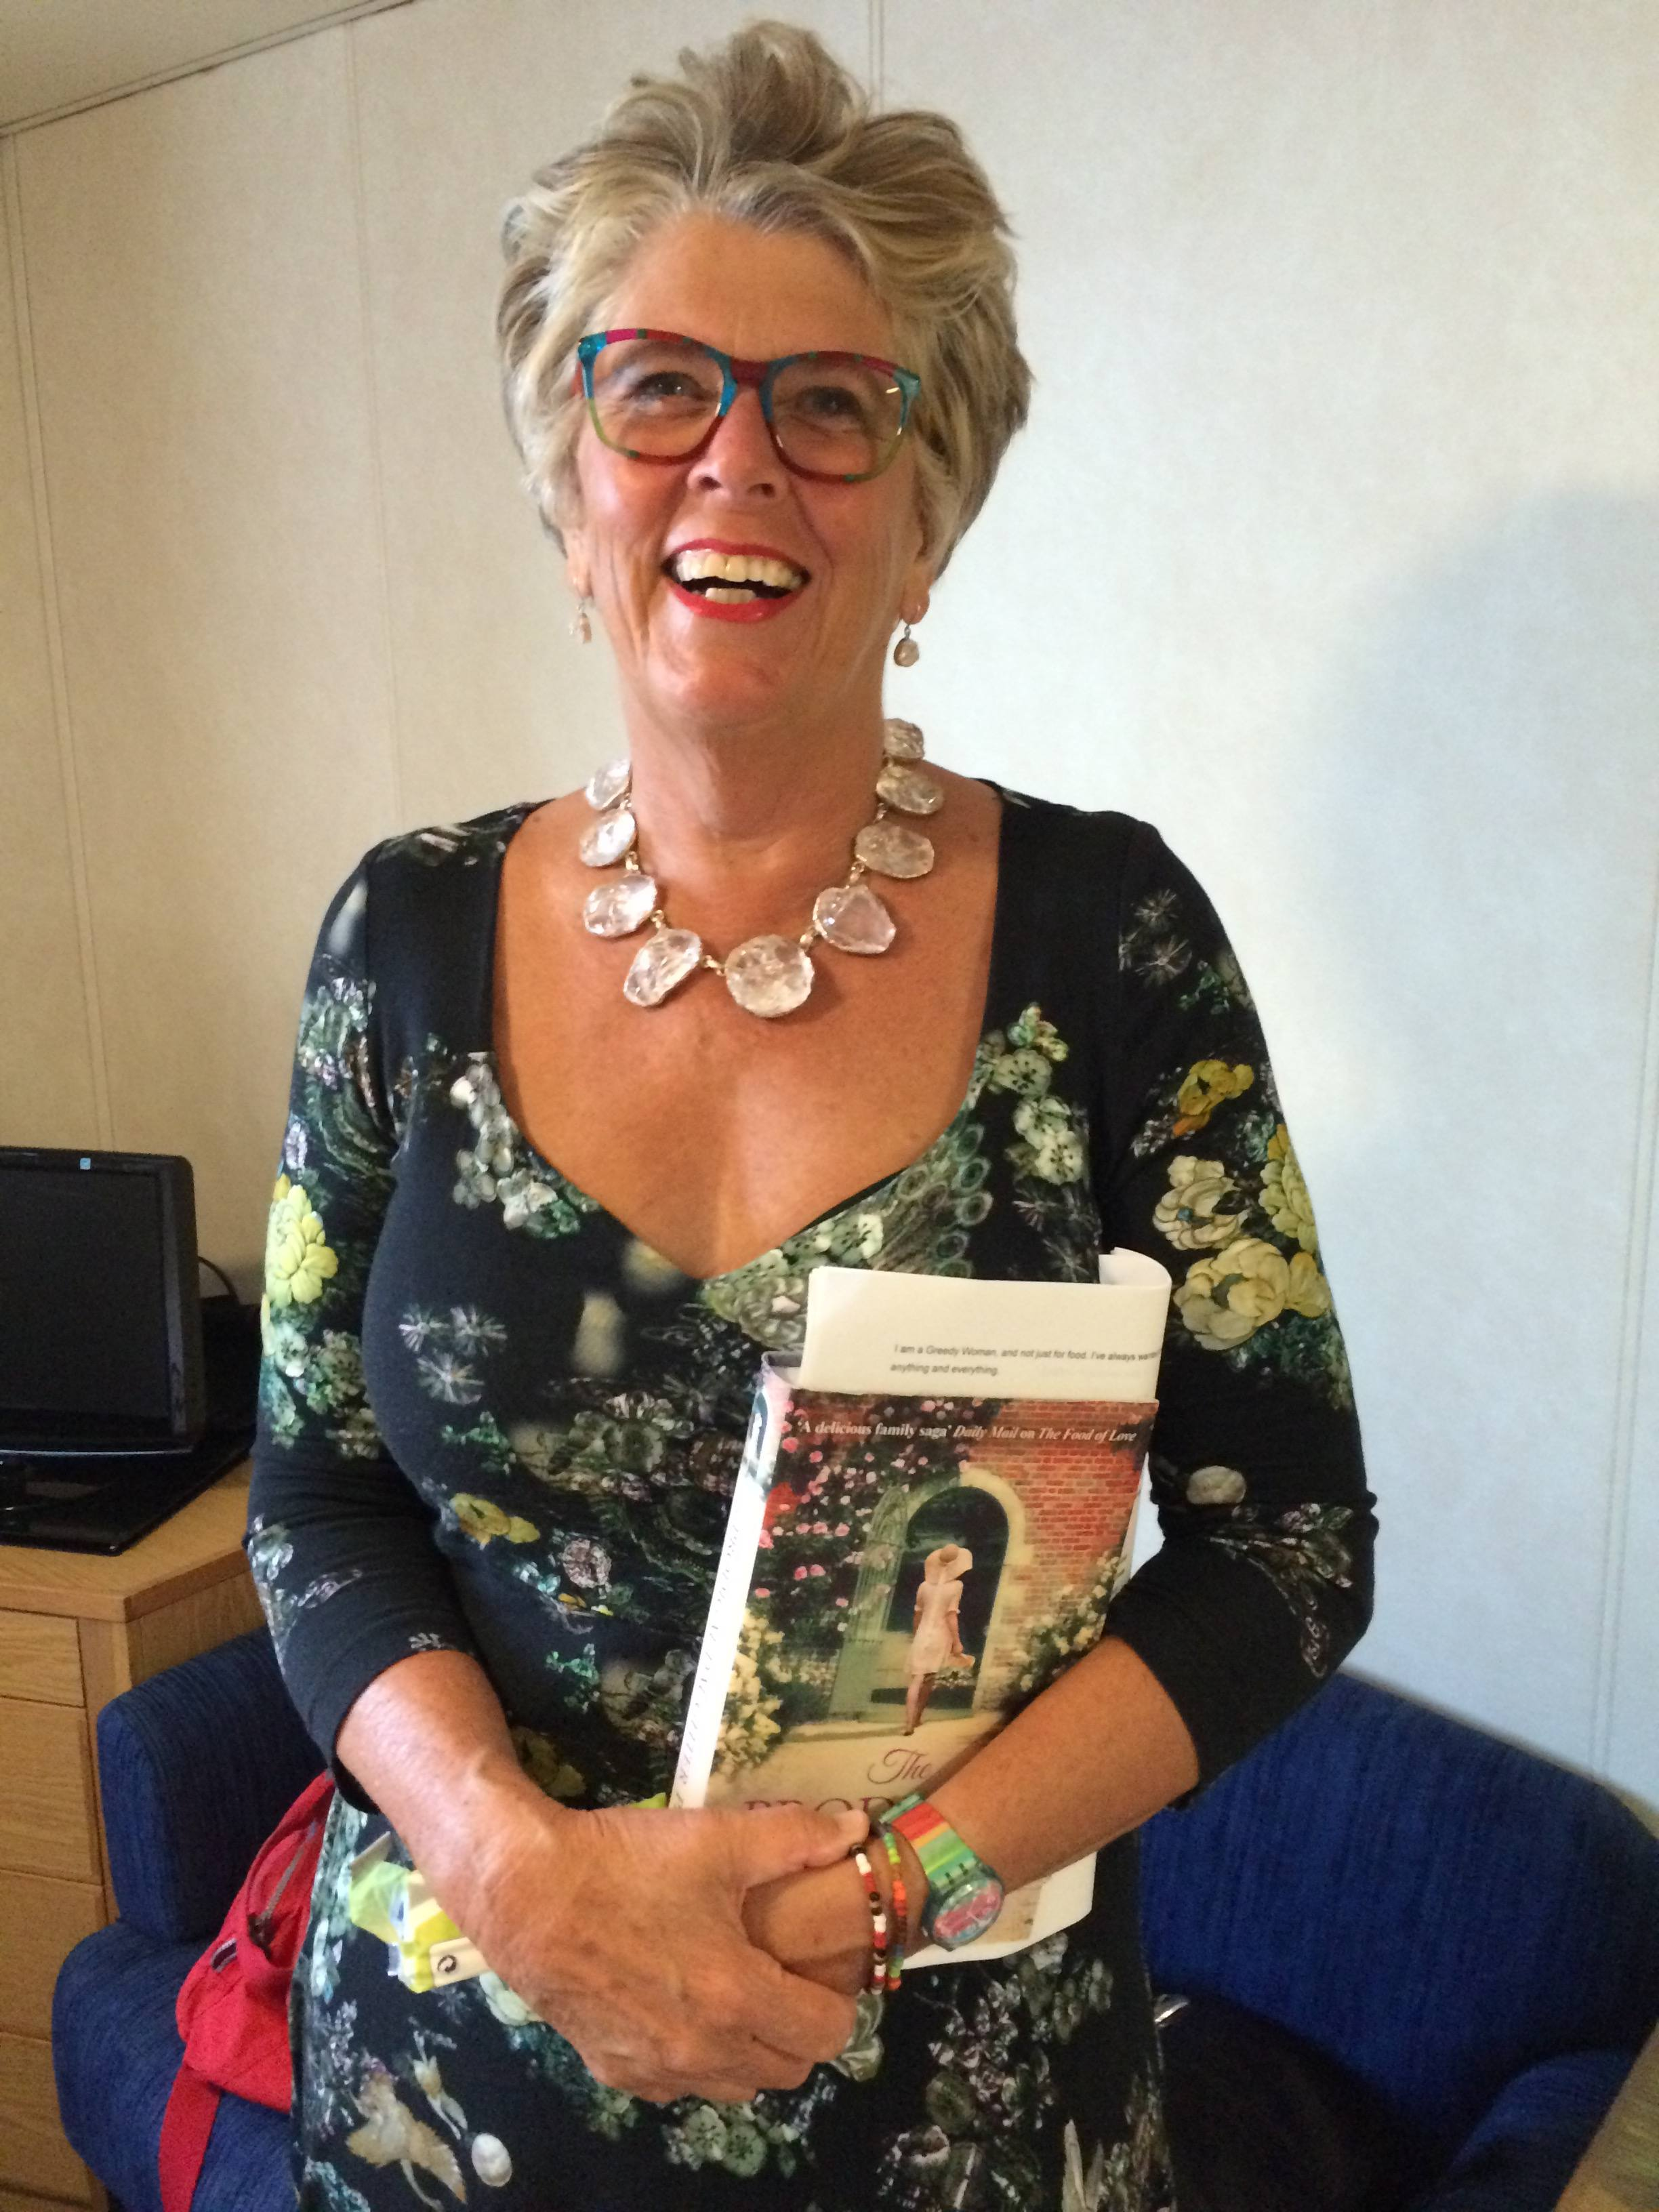 PML with PD Sept16 26 Things You Didn't Know About Bake Off's Prue Leith